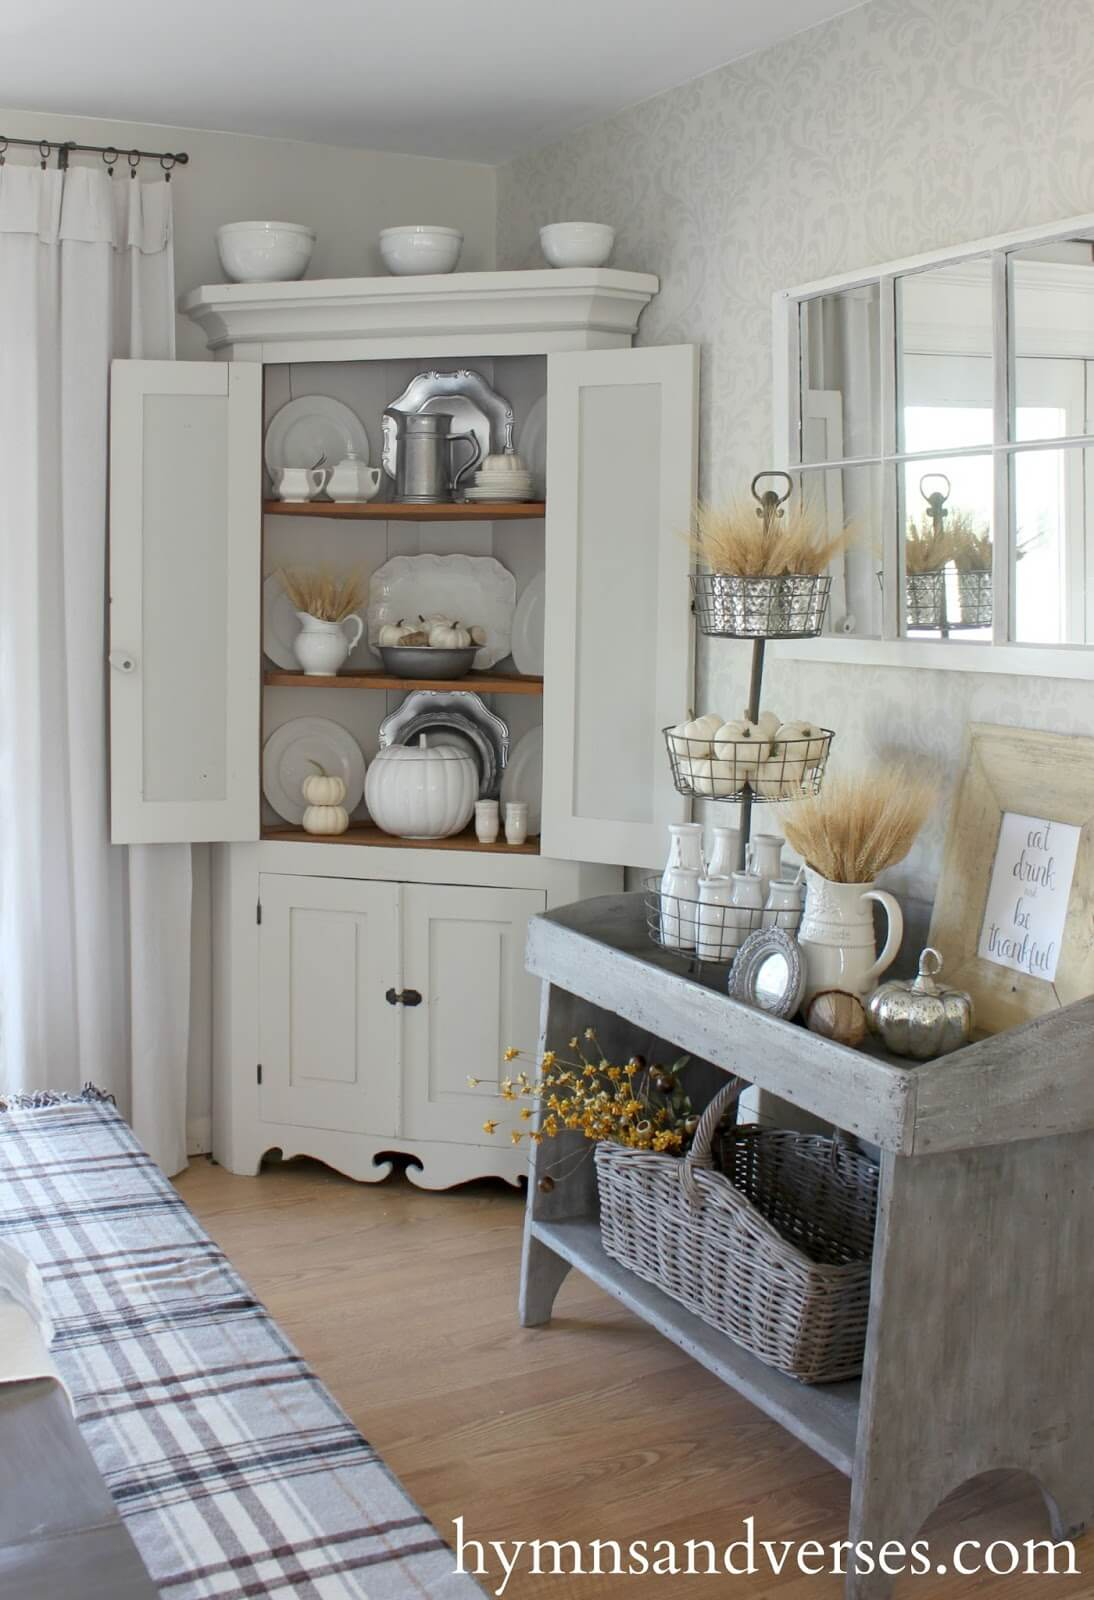 A Clean Old Fashioned Look With Rustic Decor